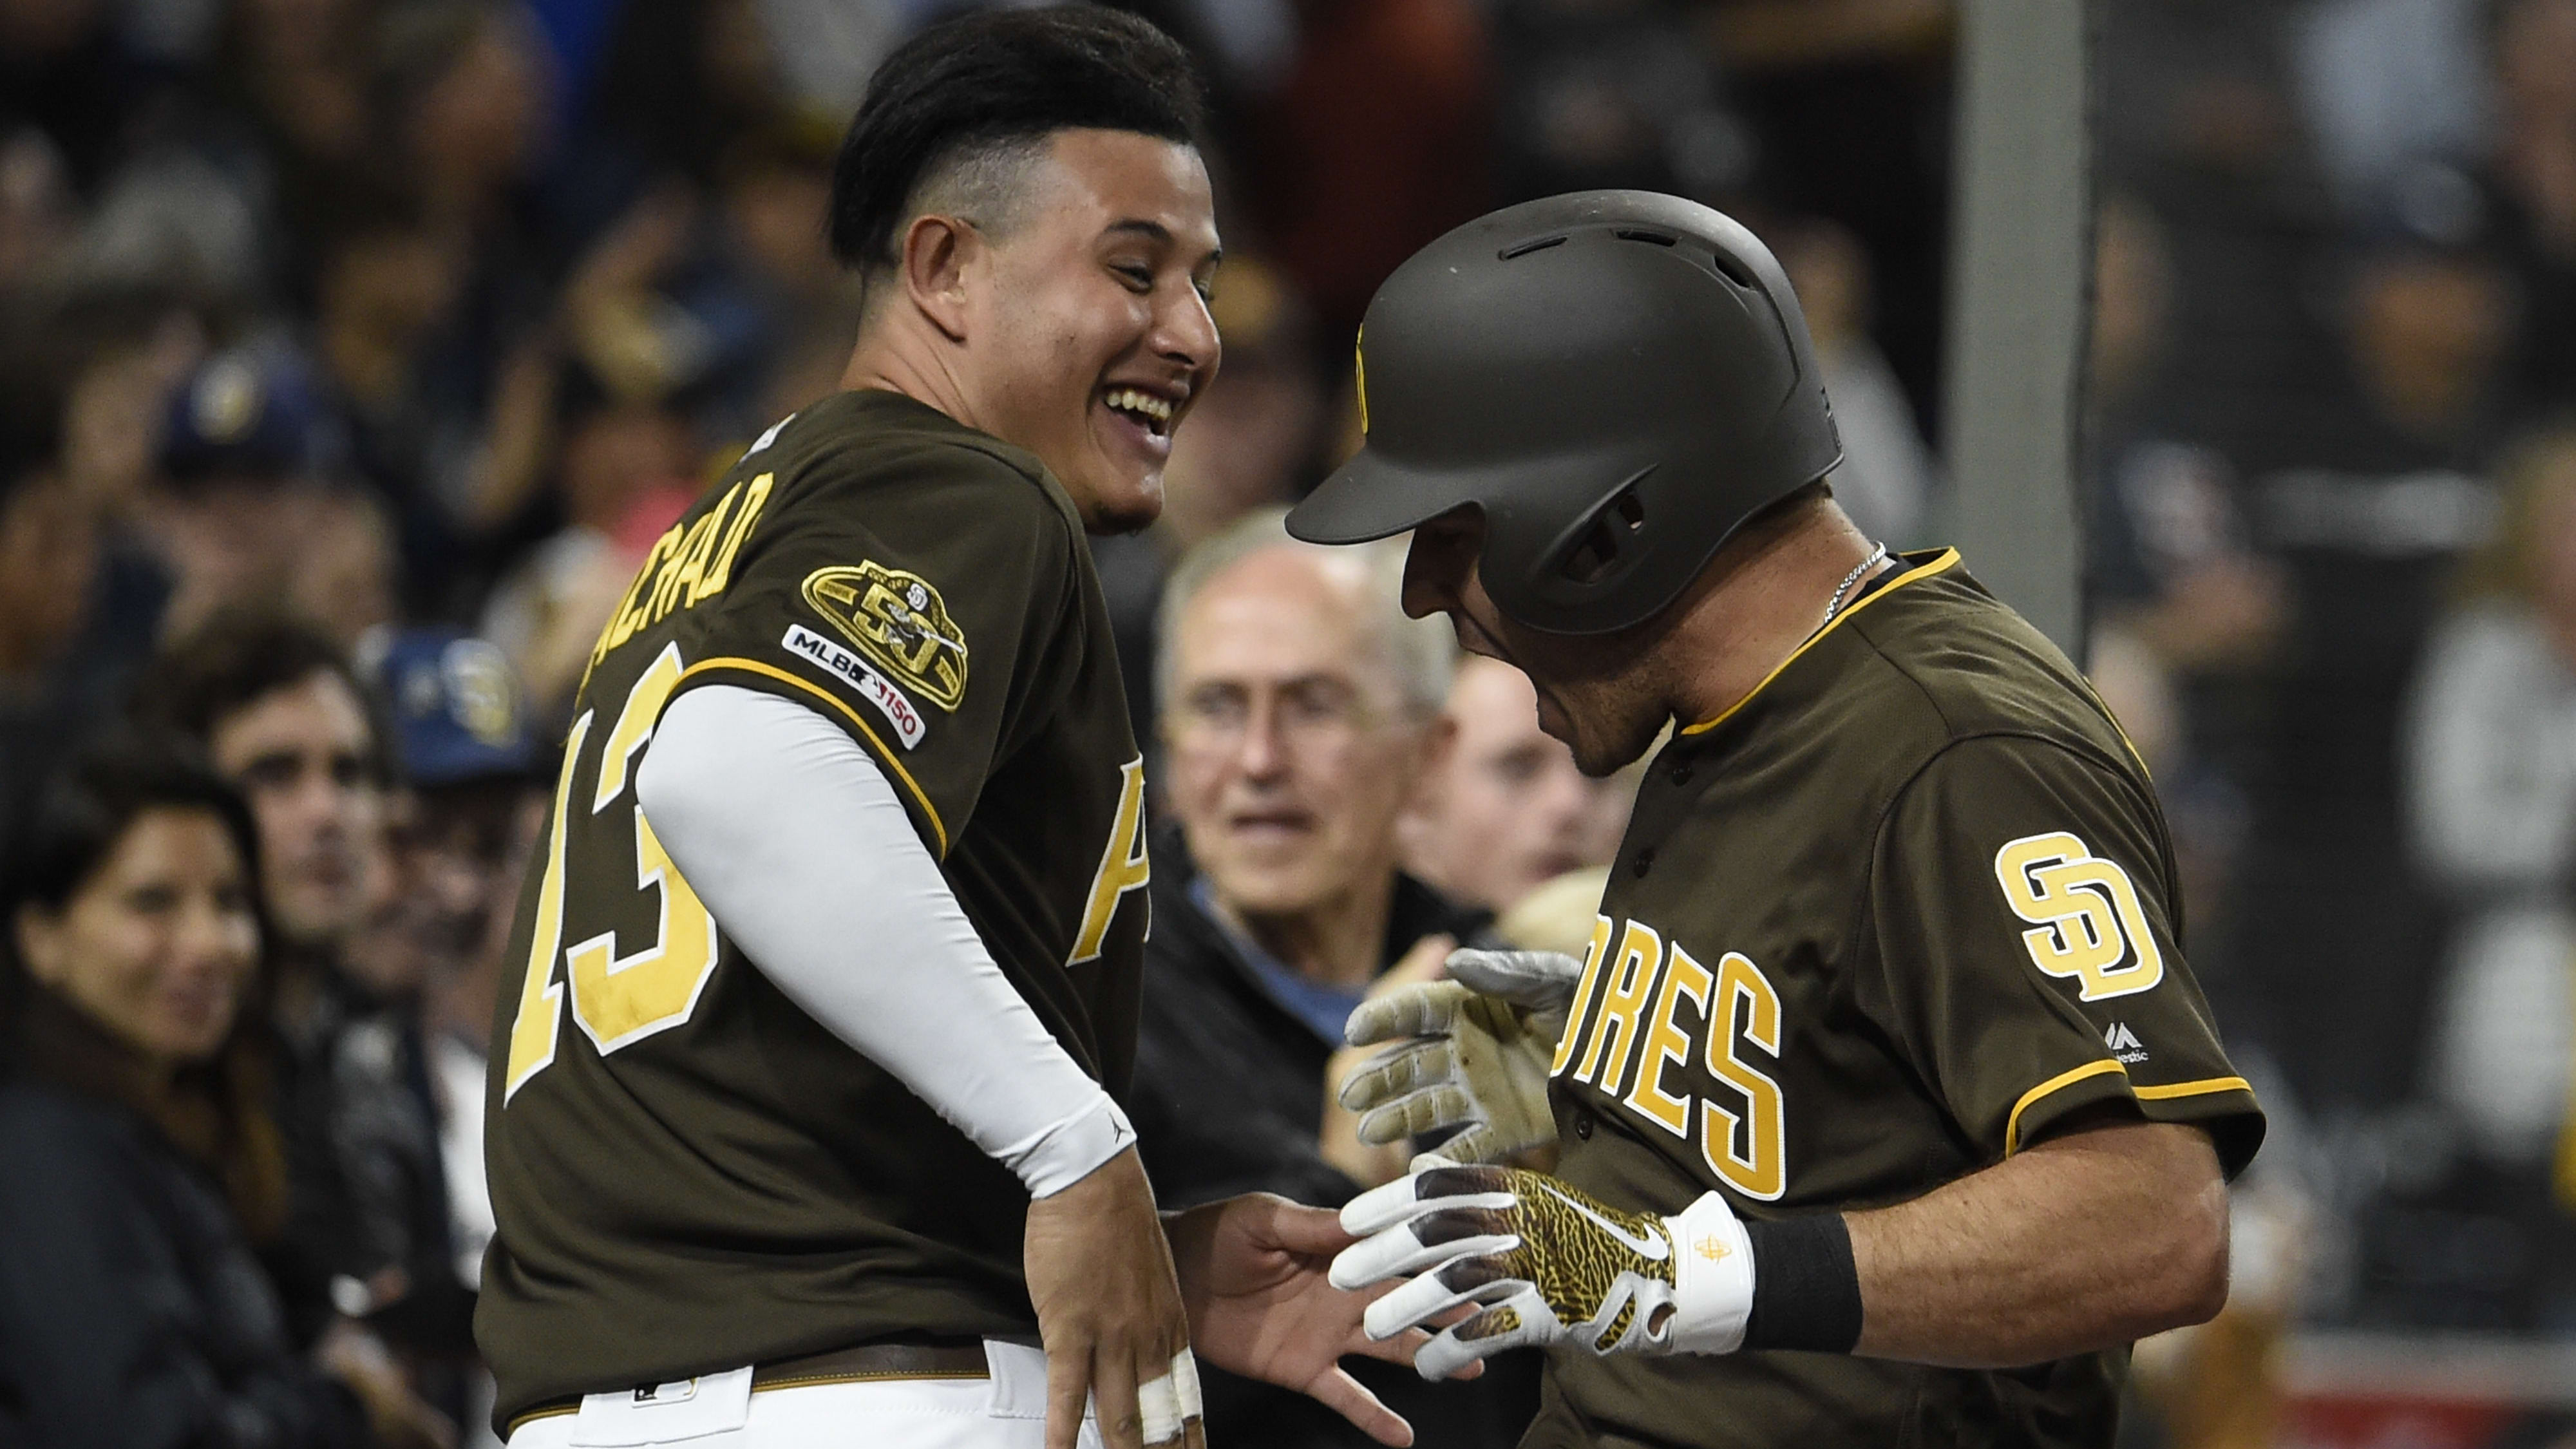 SAN DIEGO, CA - MAY 31: Ian Kinsler #3 of the San Diego Padres (R) and Manny Machado #13 celebrate after Kinsler hit a solo home run during the seventh inning of a baseball game against the Miami Marlins at Petco Park May 31, 2019 in San Diego, California.  (Photo by Denis Poroy/Getty Images)